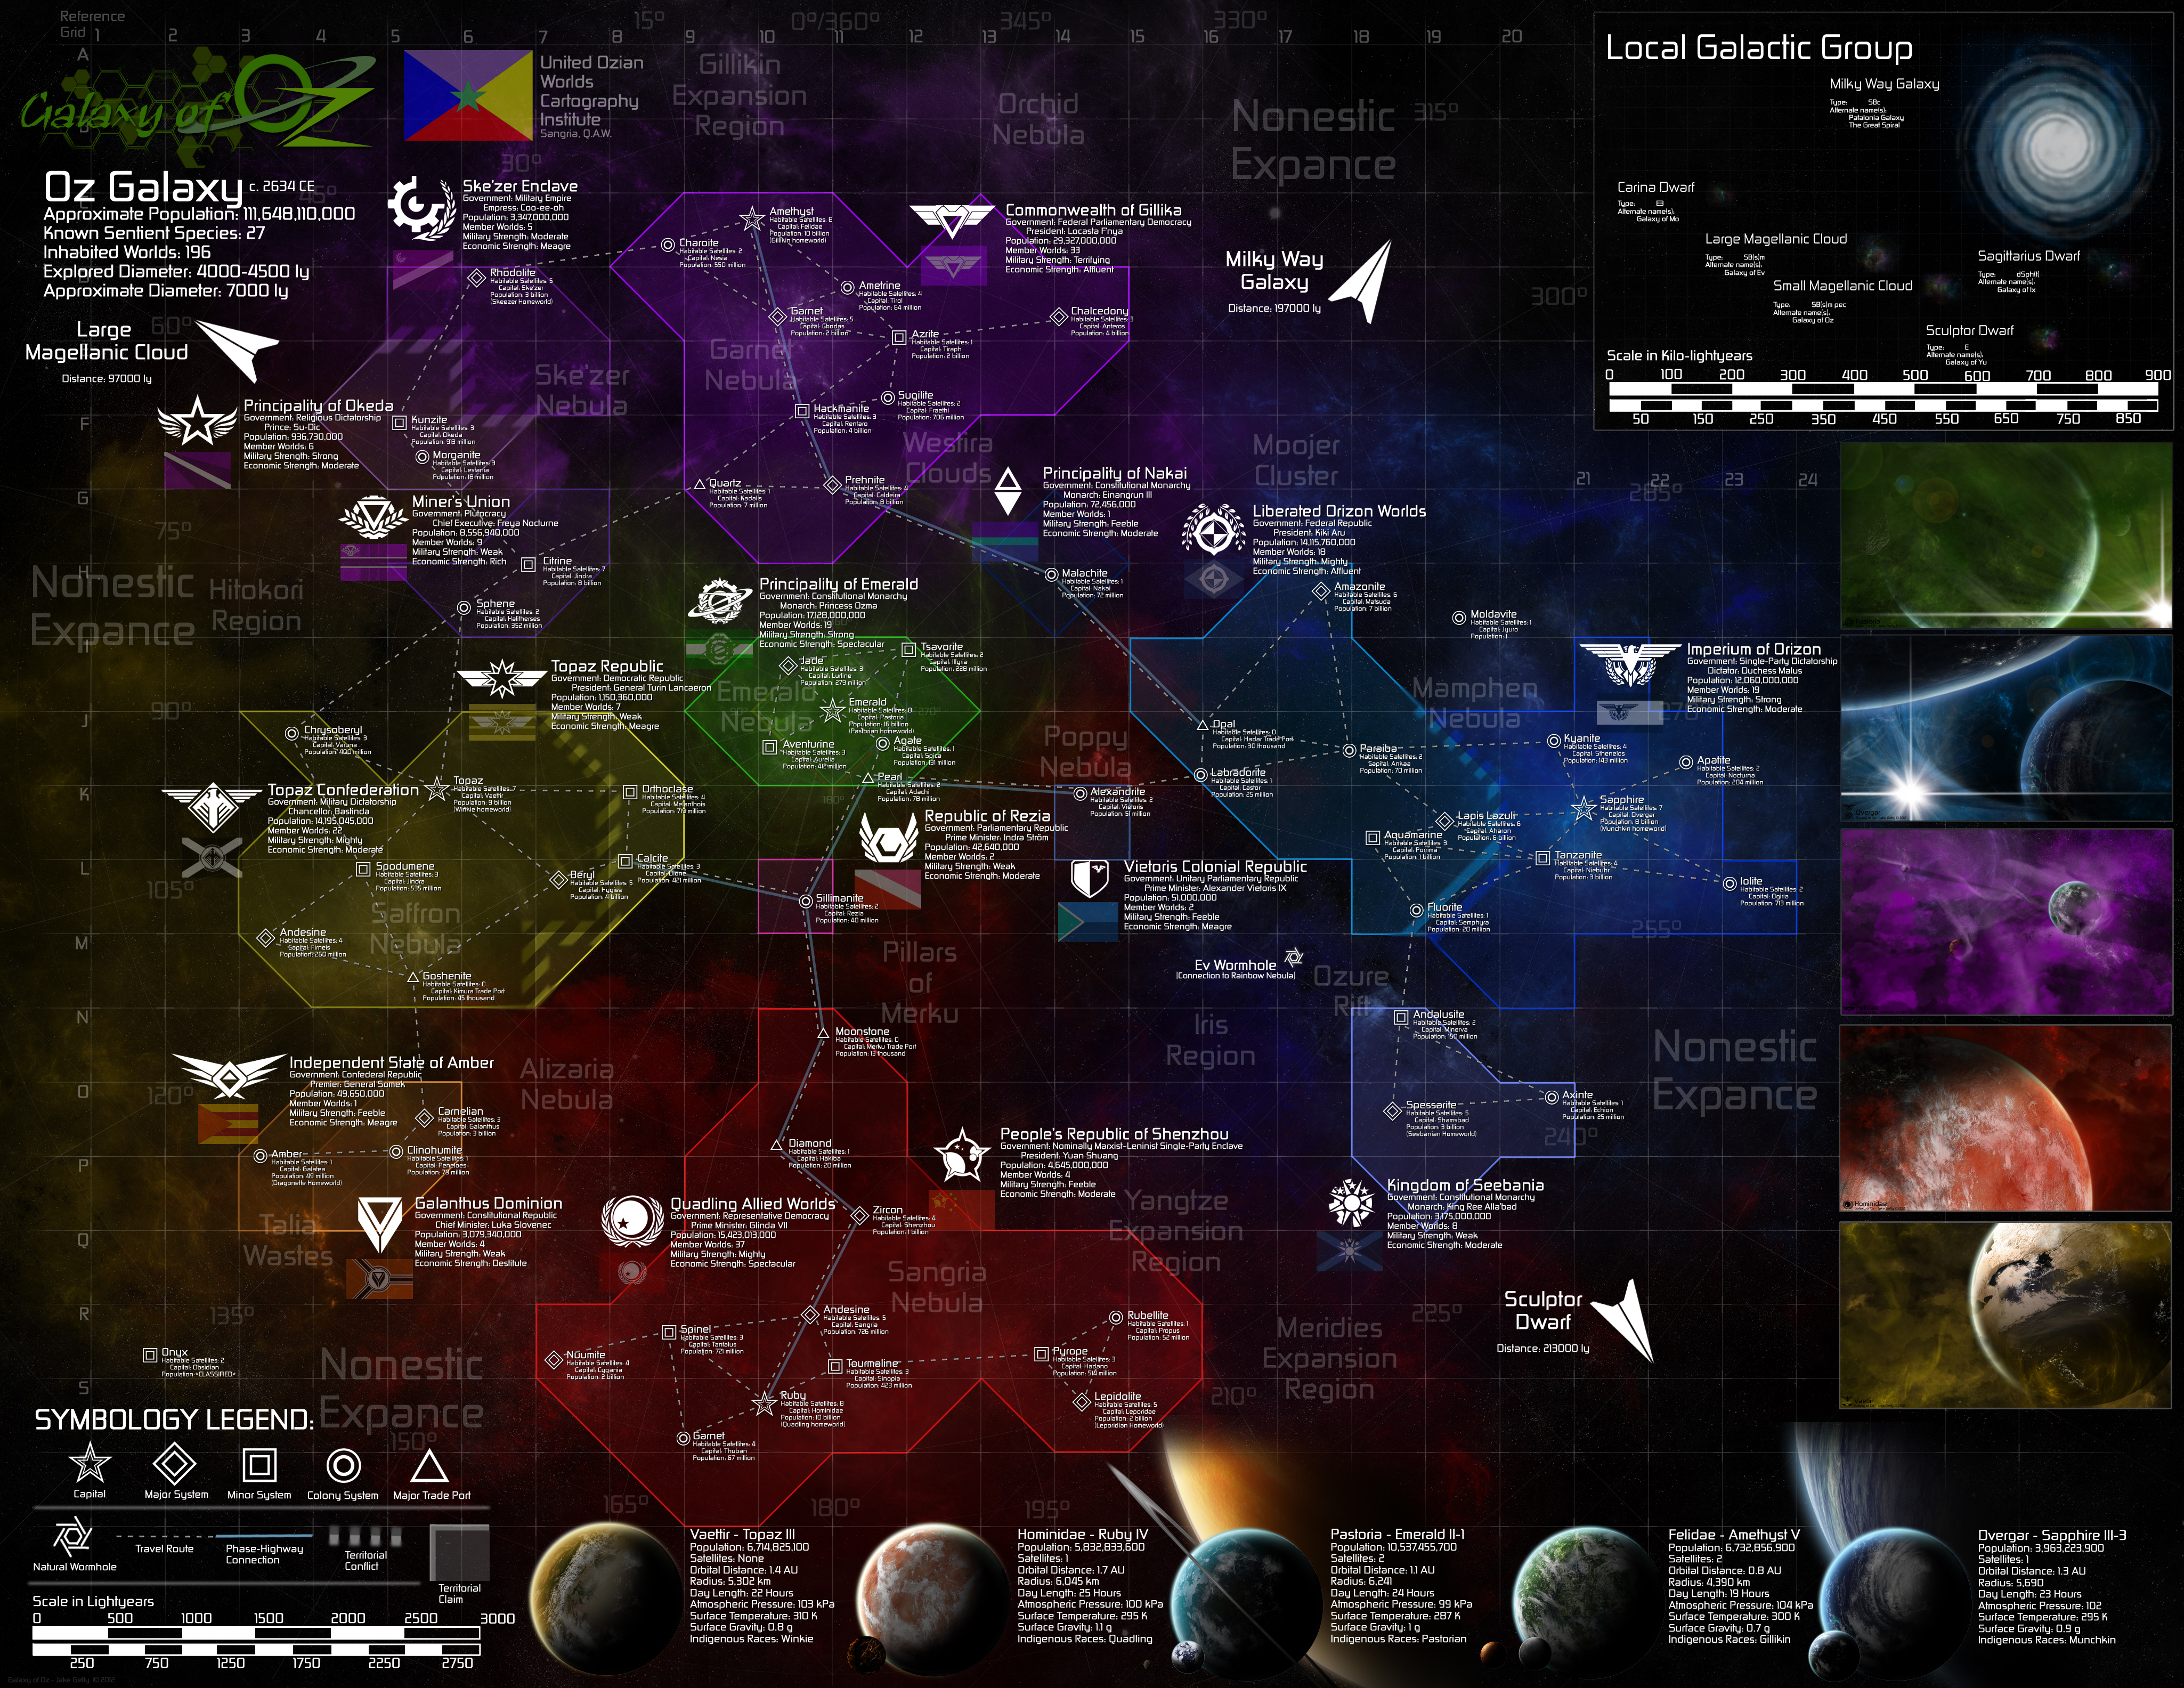 Galaxy of Oz - Galactic Map by Chobittsu-Studios on DeviantArt on continents map, hotspot map, lightning map, asteroid map, google map, universe map, local supercluster map, astronomy map, sun map, spectrum map, solar system map, supreme map, science map, custom map, milky way map, world map, constellation map, venus map, usa map, classic map,